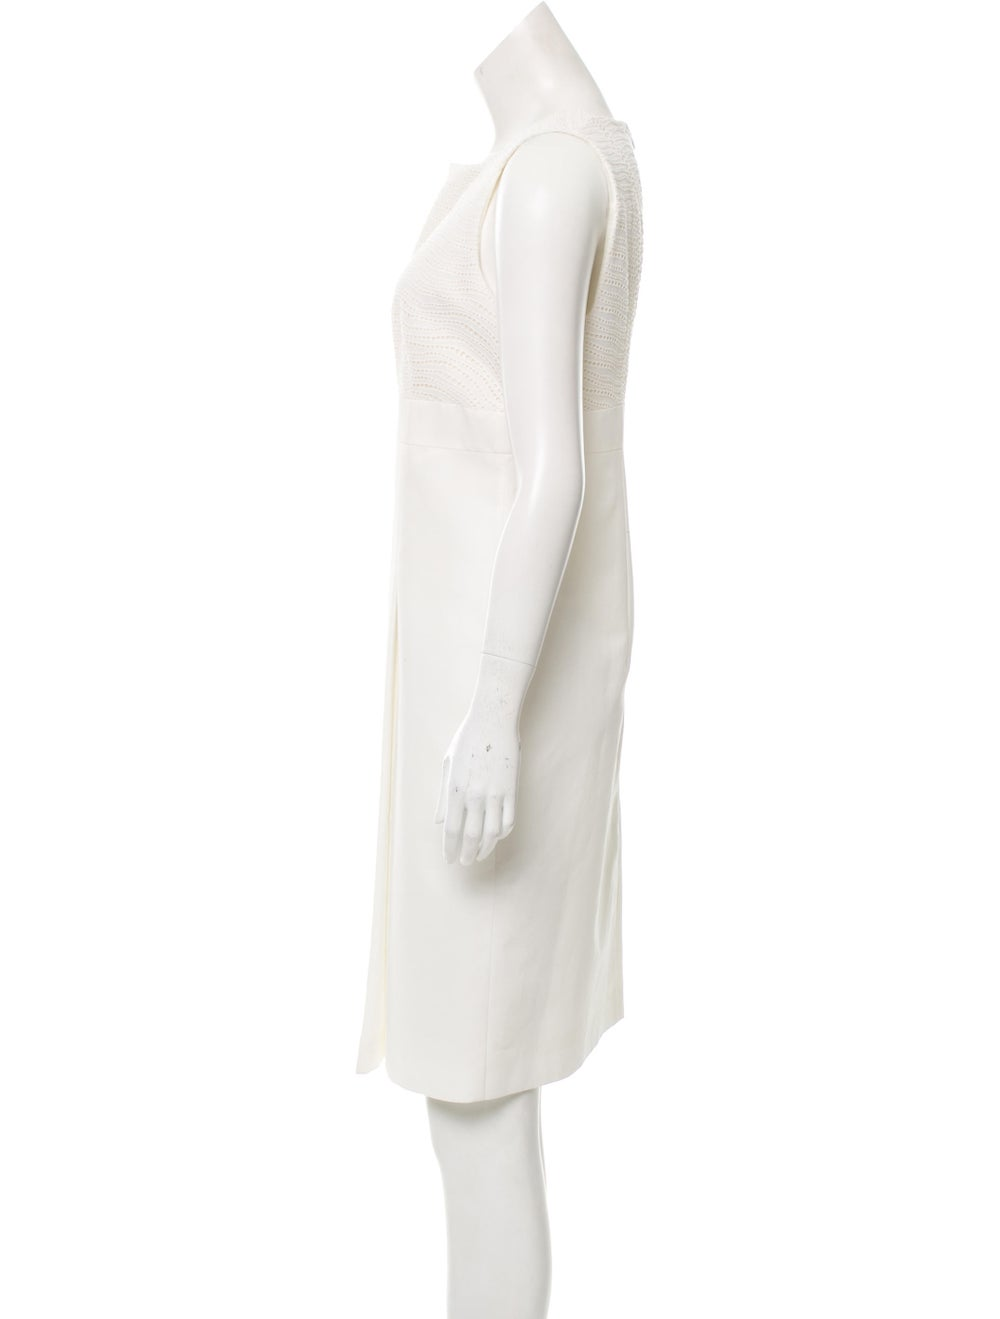 Akris Sleeveless Eyelet Dress - image 2